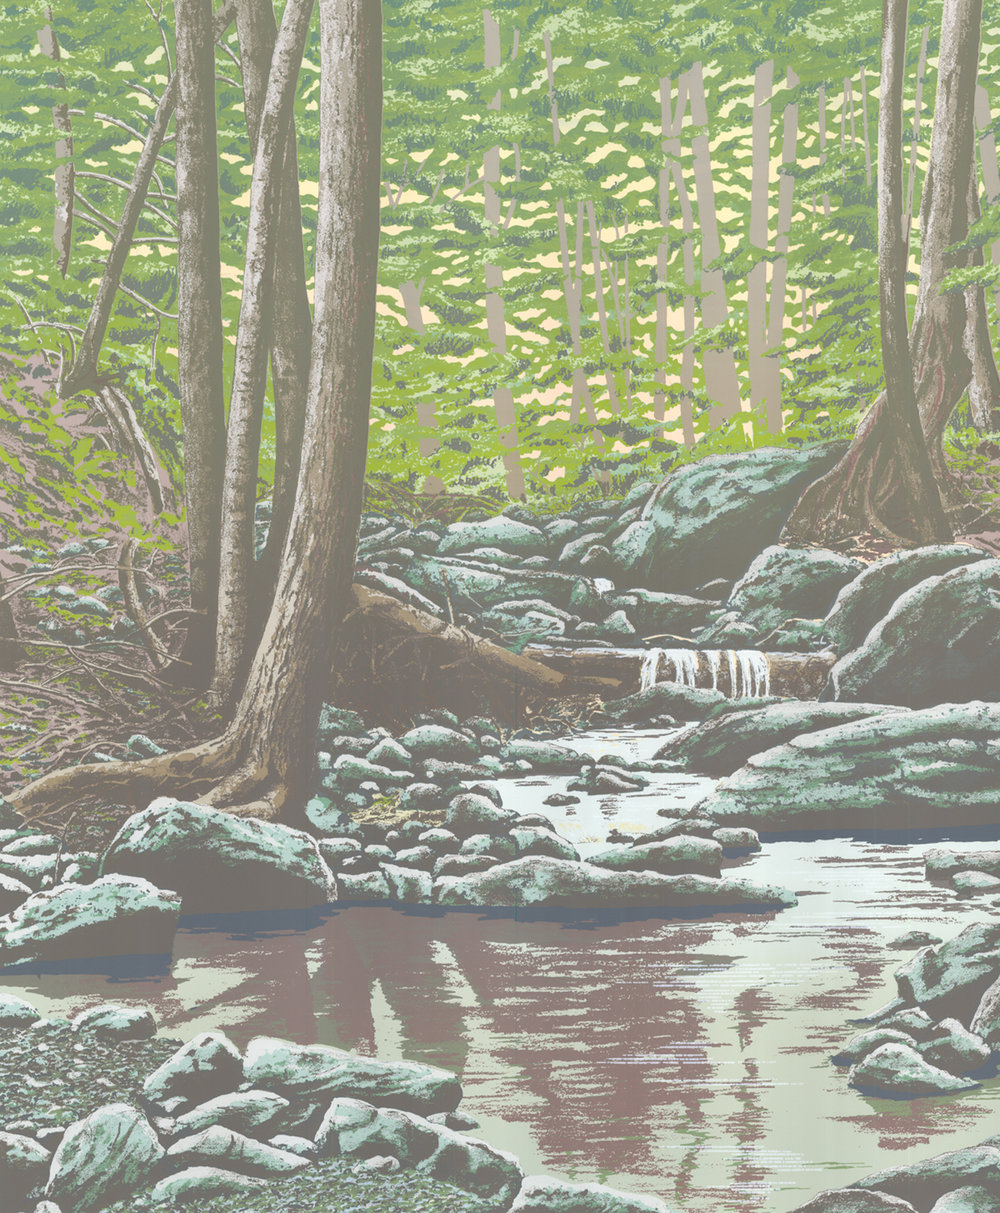 "234   Forest Faces - 6.1   20"" x 24"" 14 colors 10 edition / 4 available  $775"